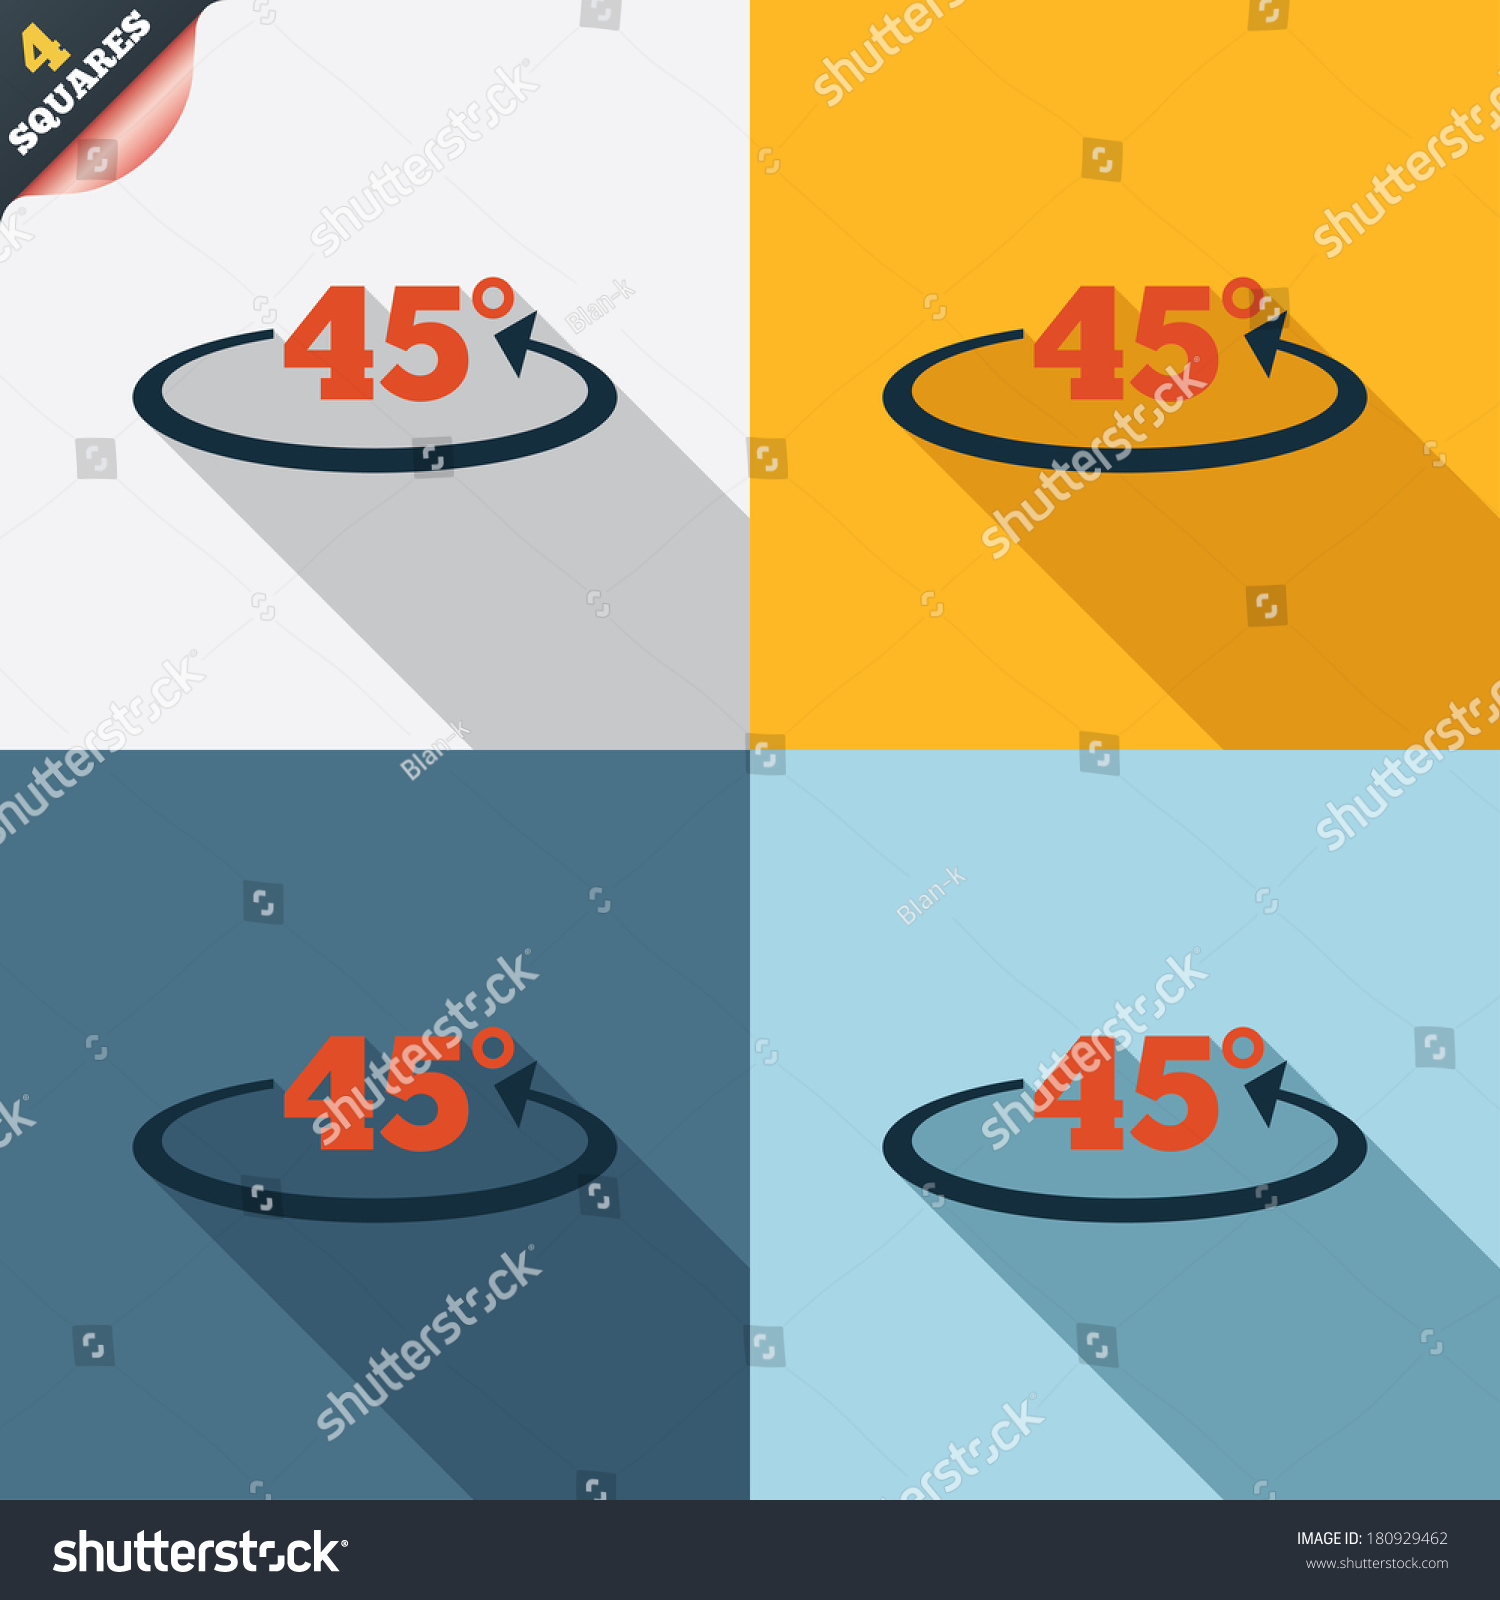 Angle 45 Degrees Sign Icon Geometry Stock Illustration 180929462 ...